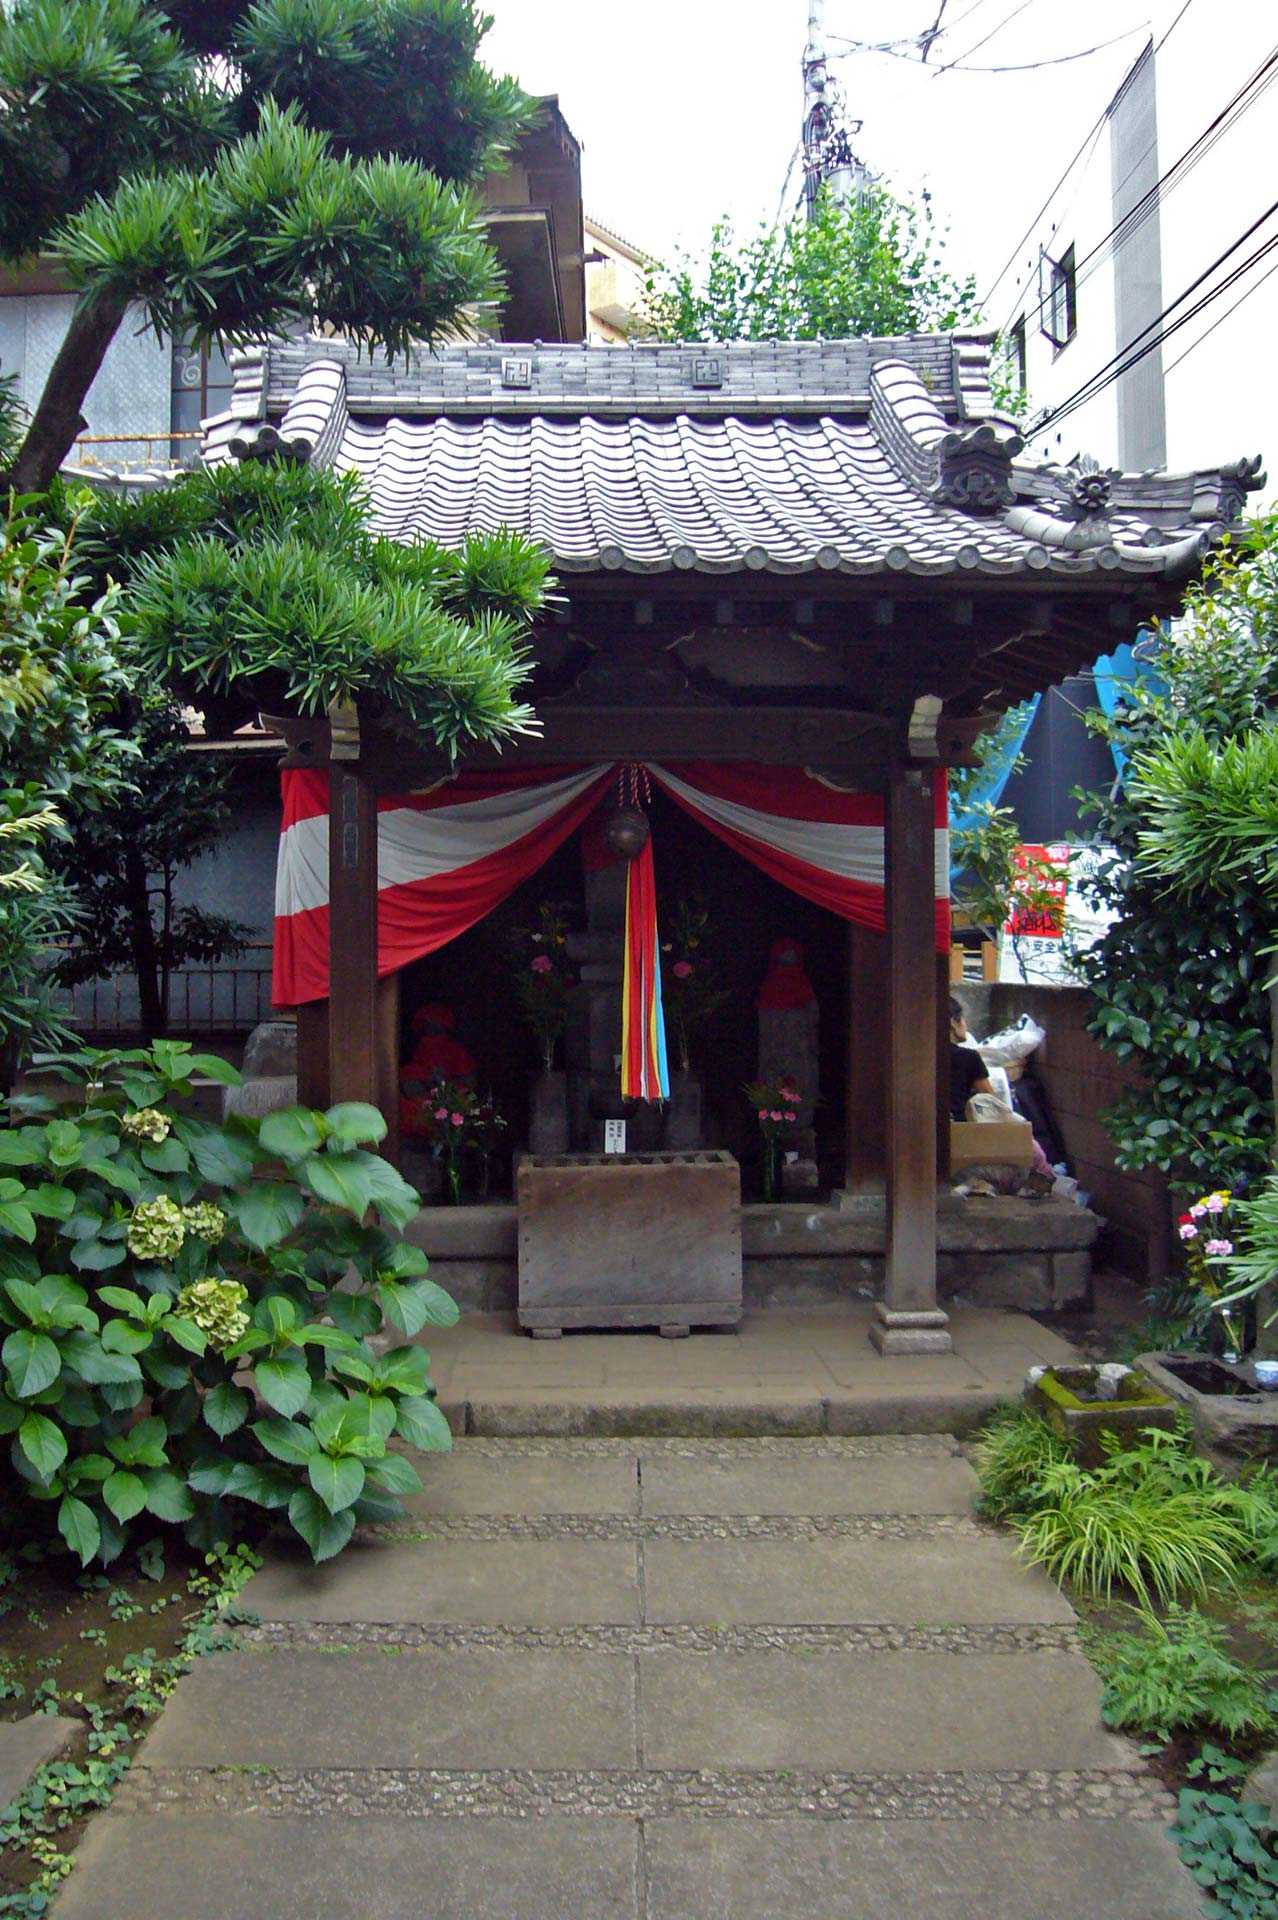 The small shrines